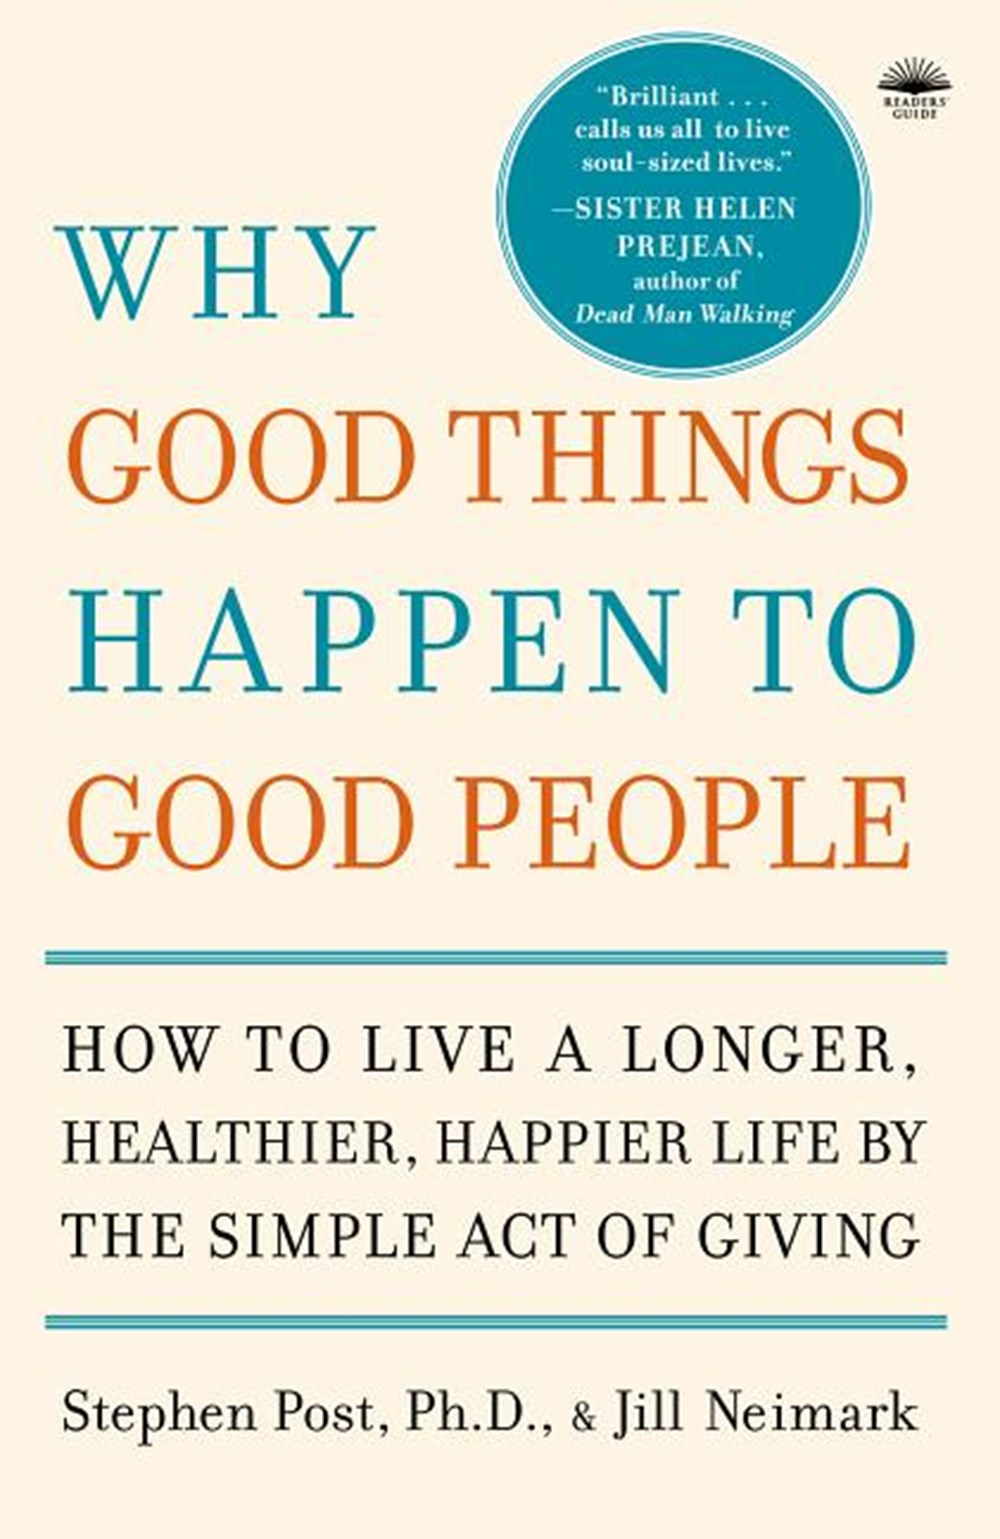 Why Good Things Happen to Good People The Exciting New Research That Proves the Link Between Doing G